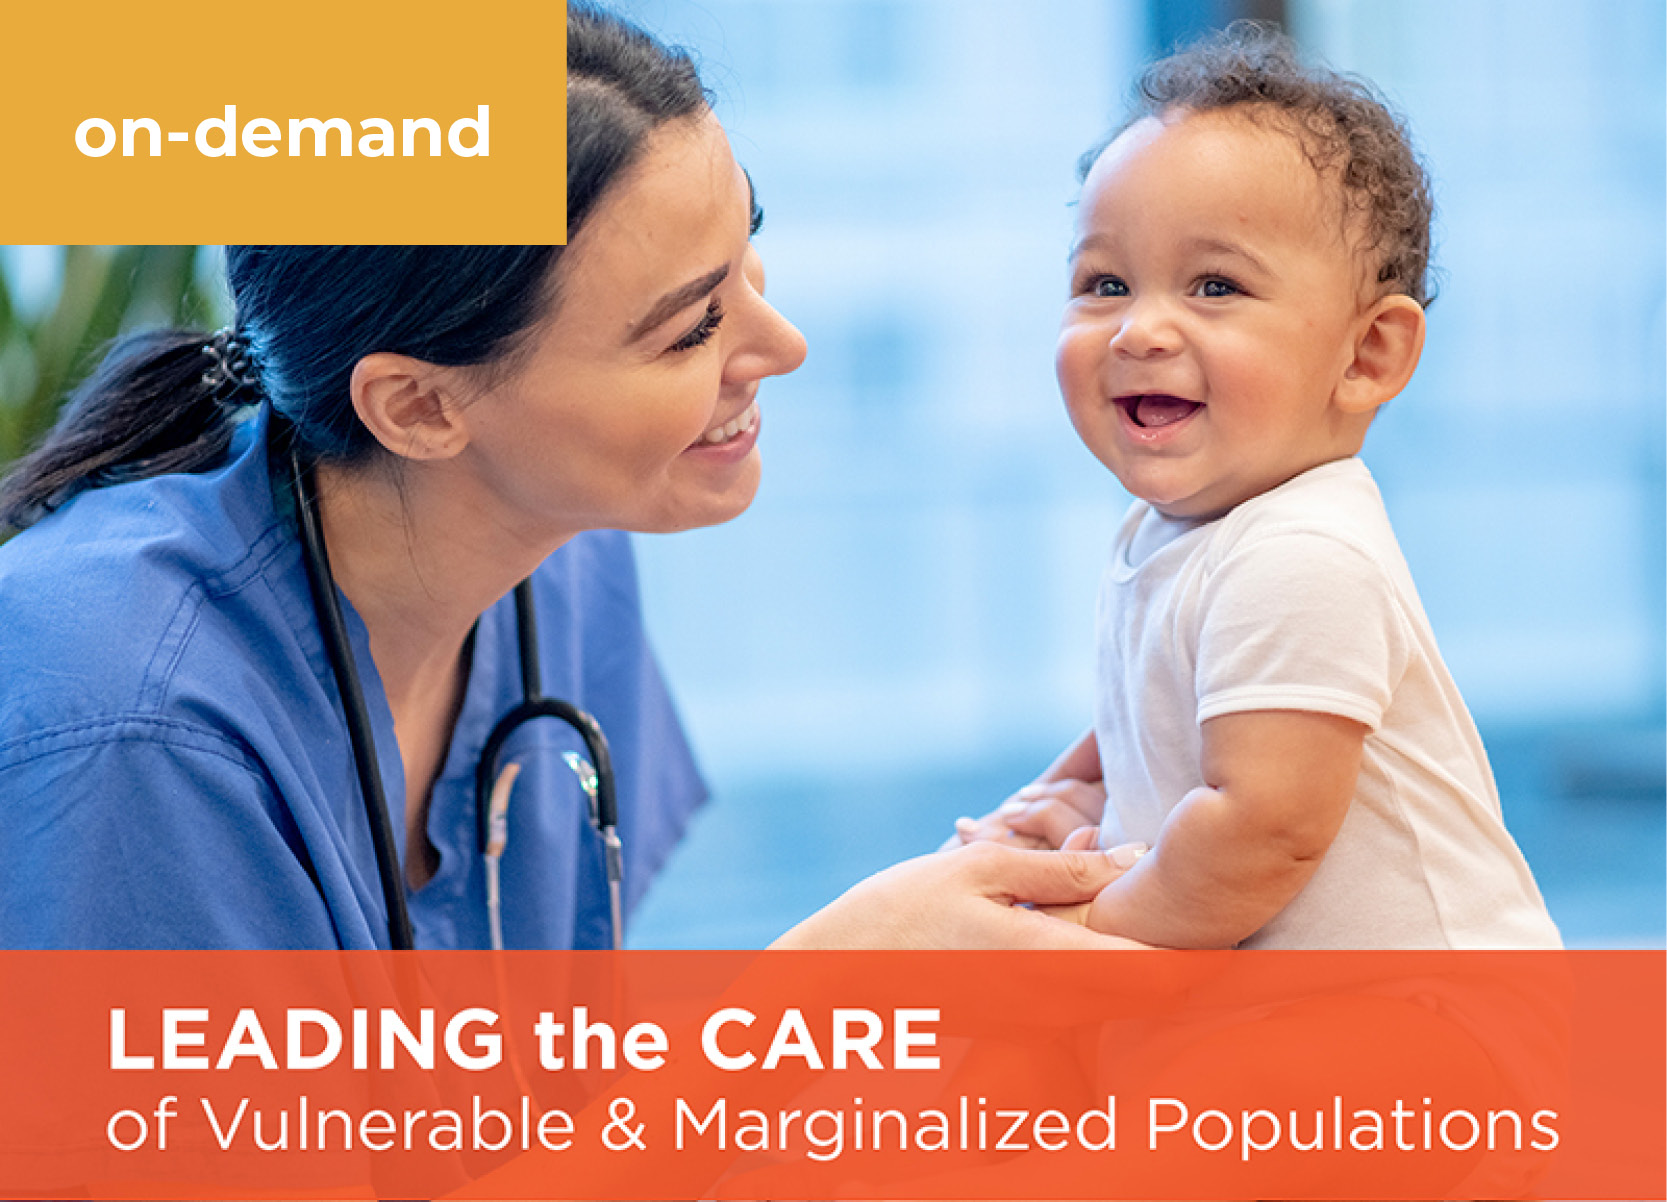 On-Demand: Leading the Care of Vulnerable & Marginalized Populations